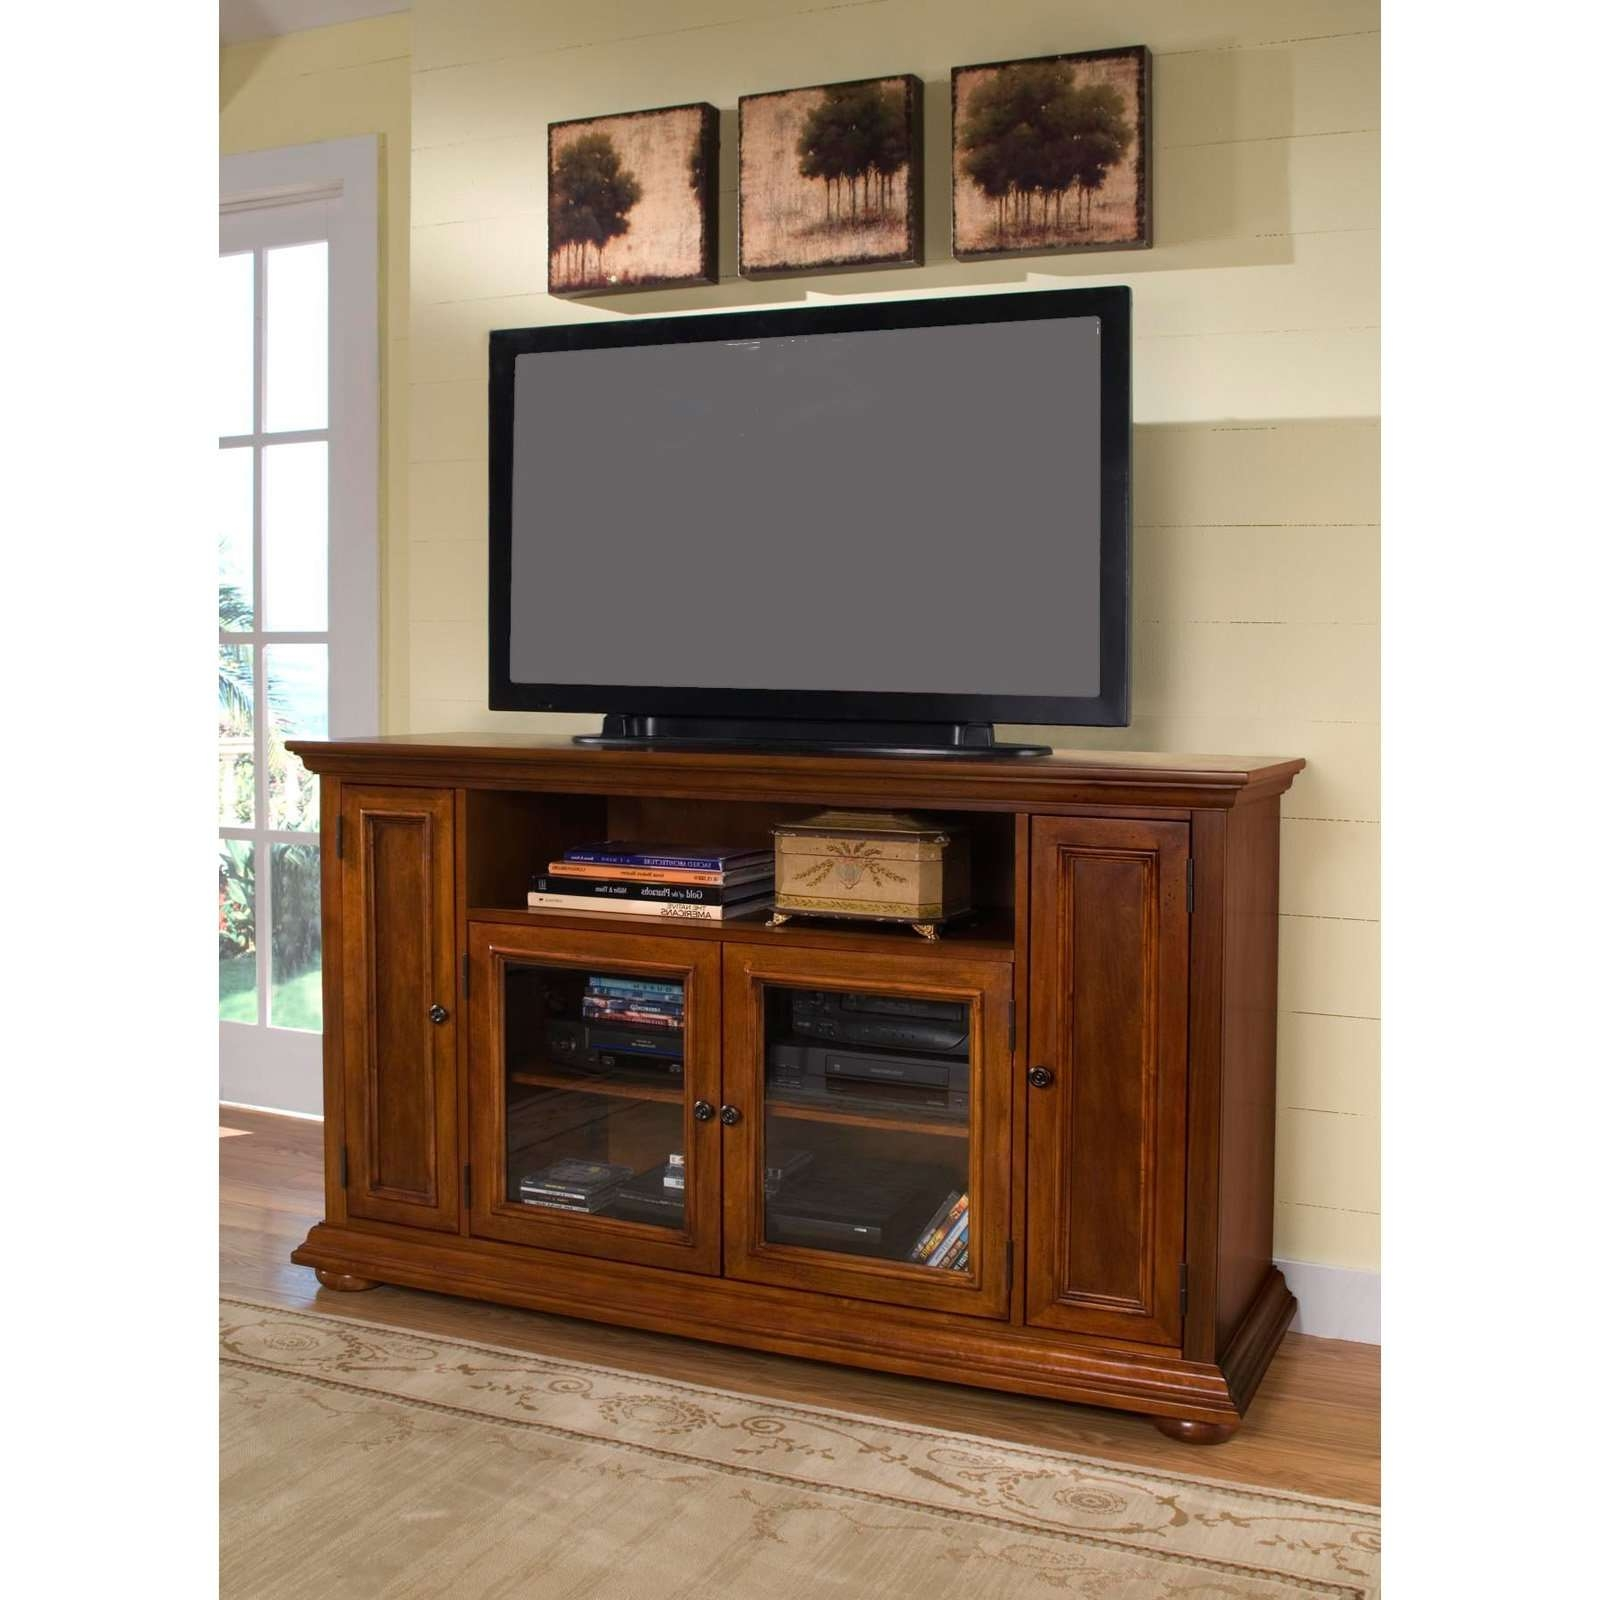 Rectangle Black Flat Screen Tv Over Brown Wooden Cabinet With Inside Wooden Tv Stands With Doors (View 7 of 15)